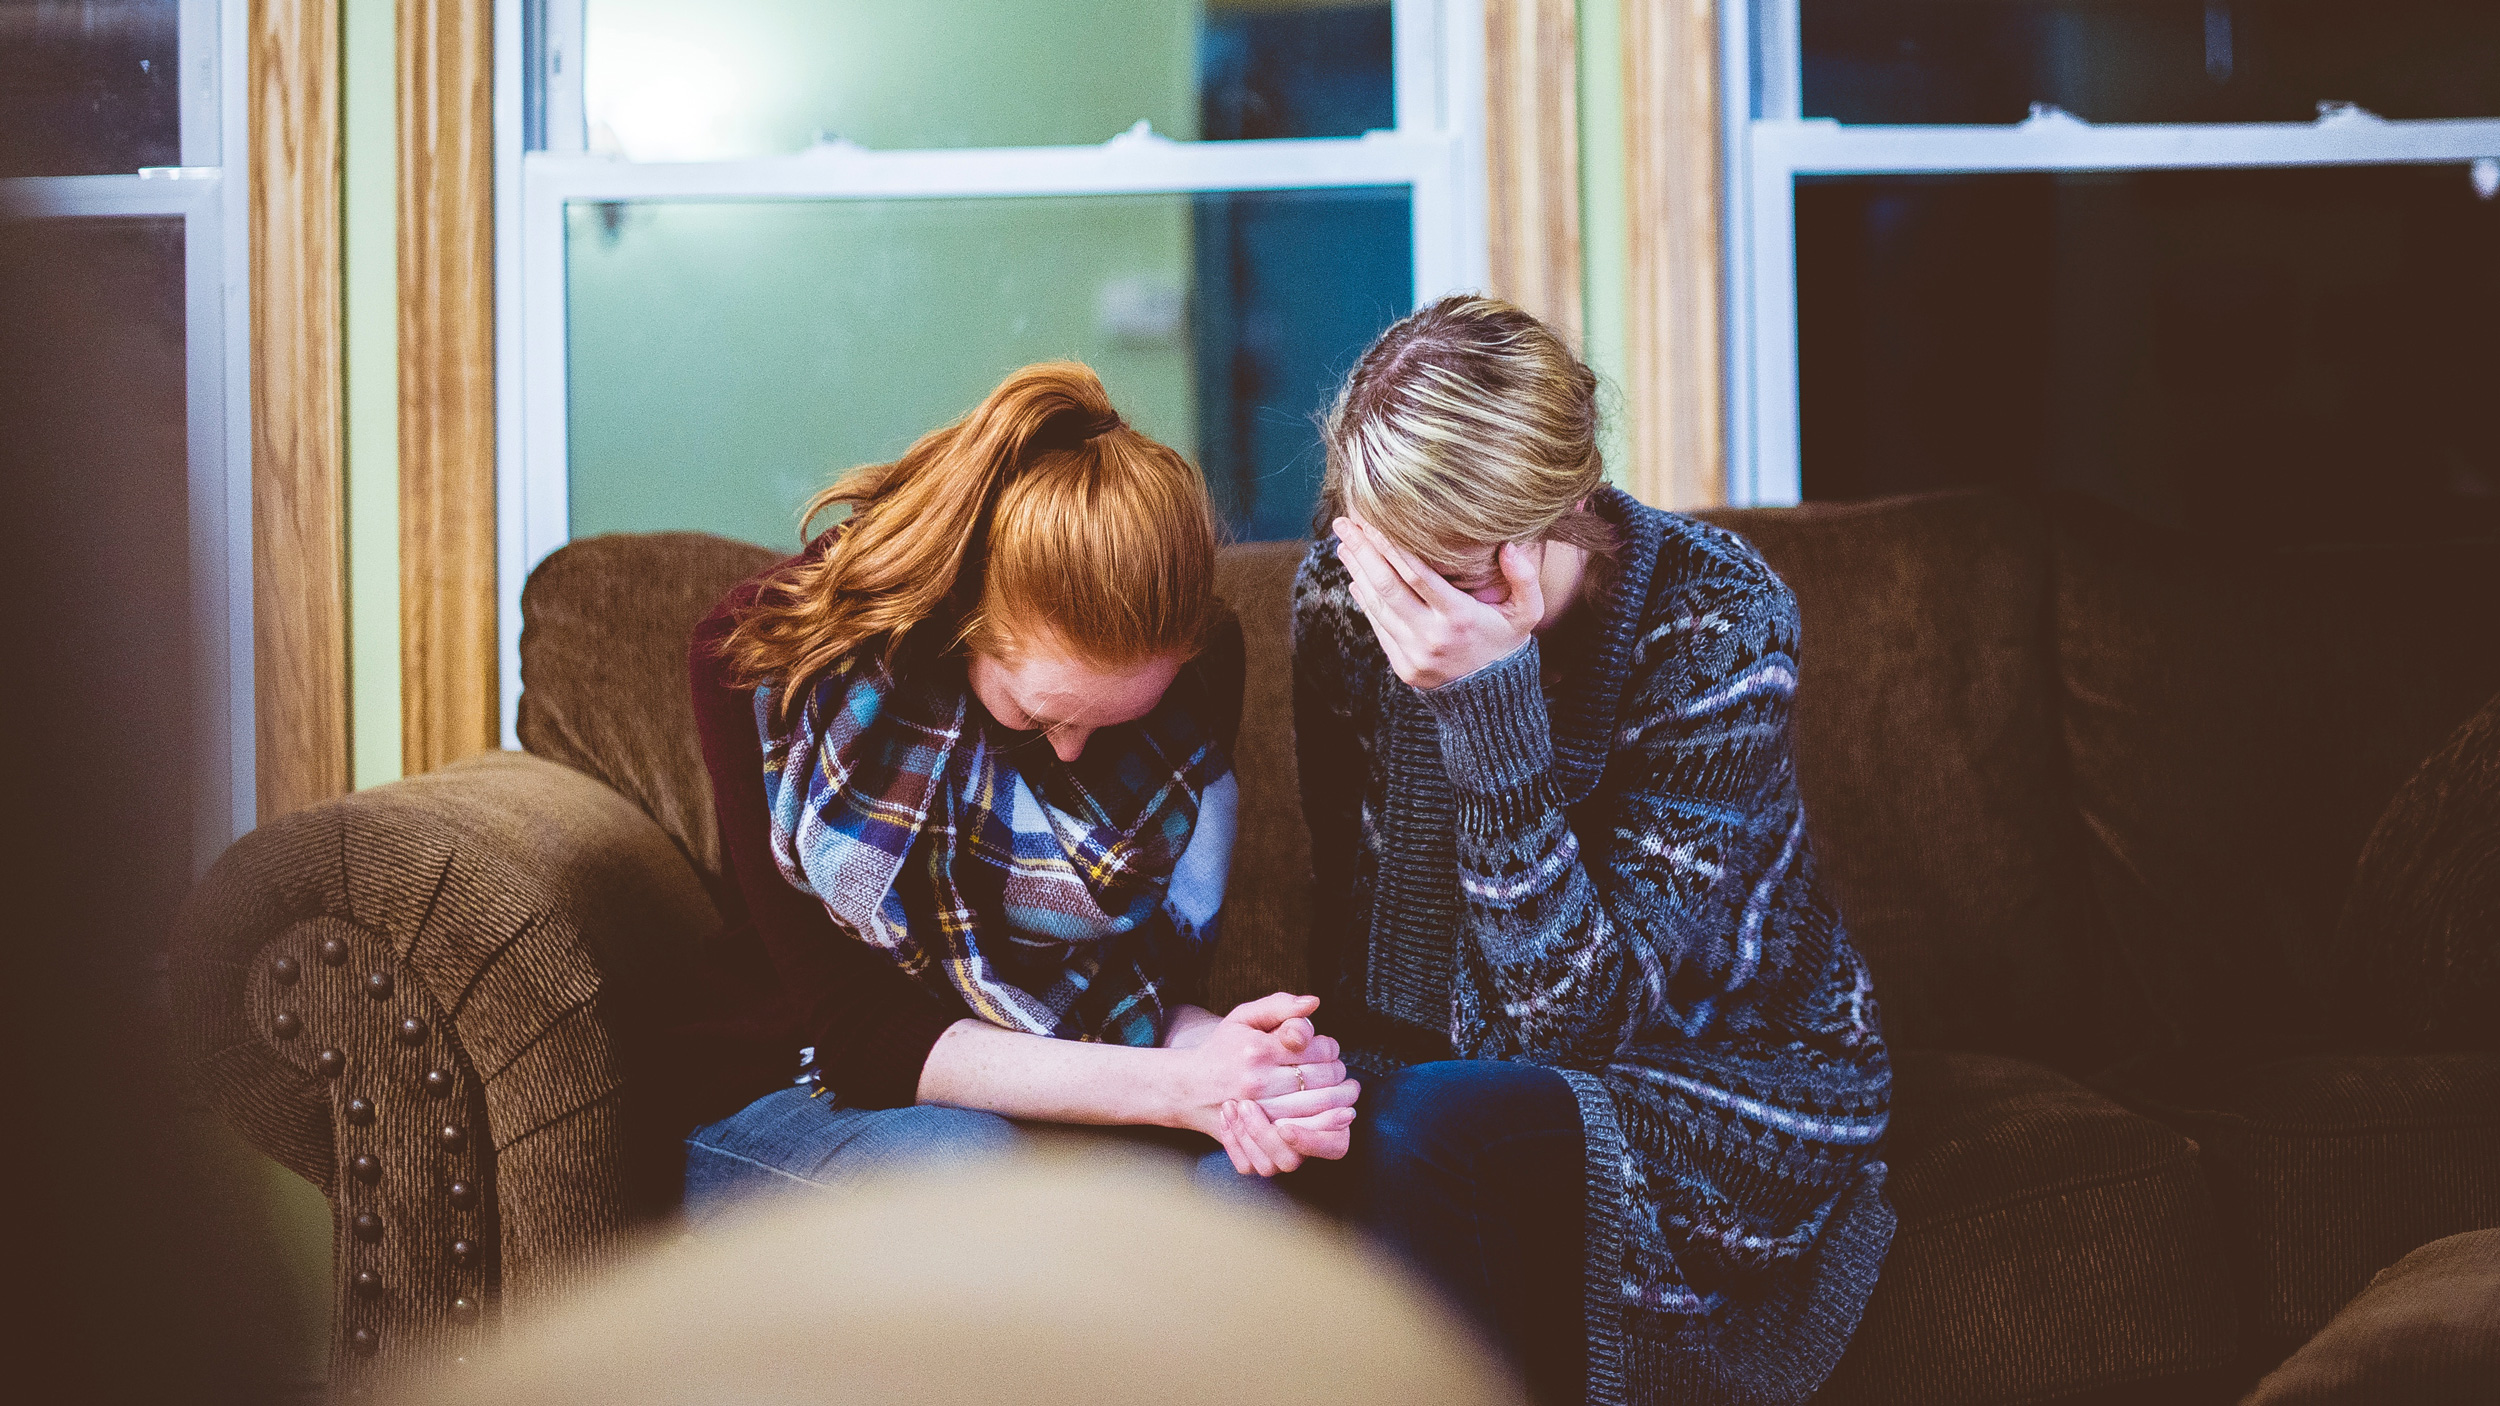 Finding Hope in a Time of Grief